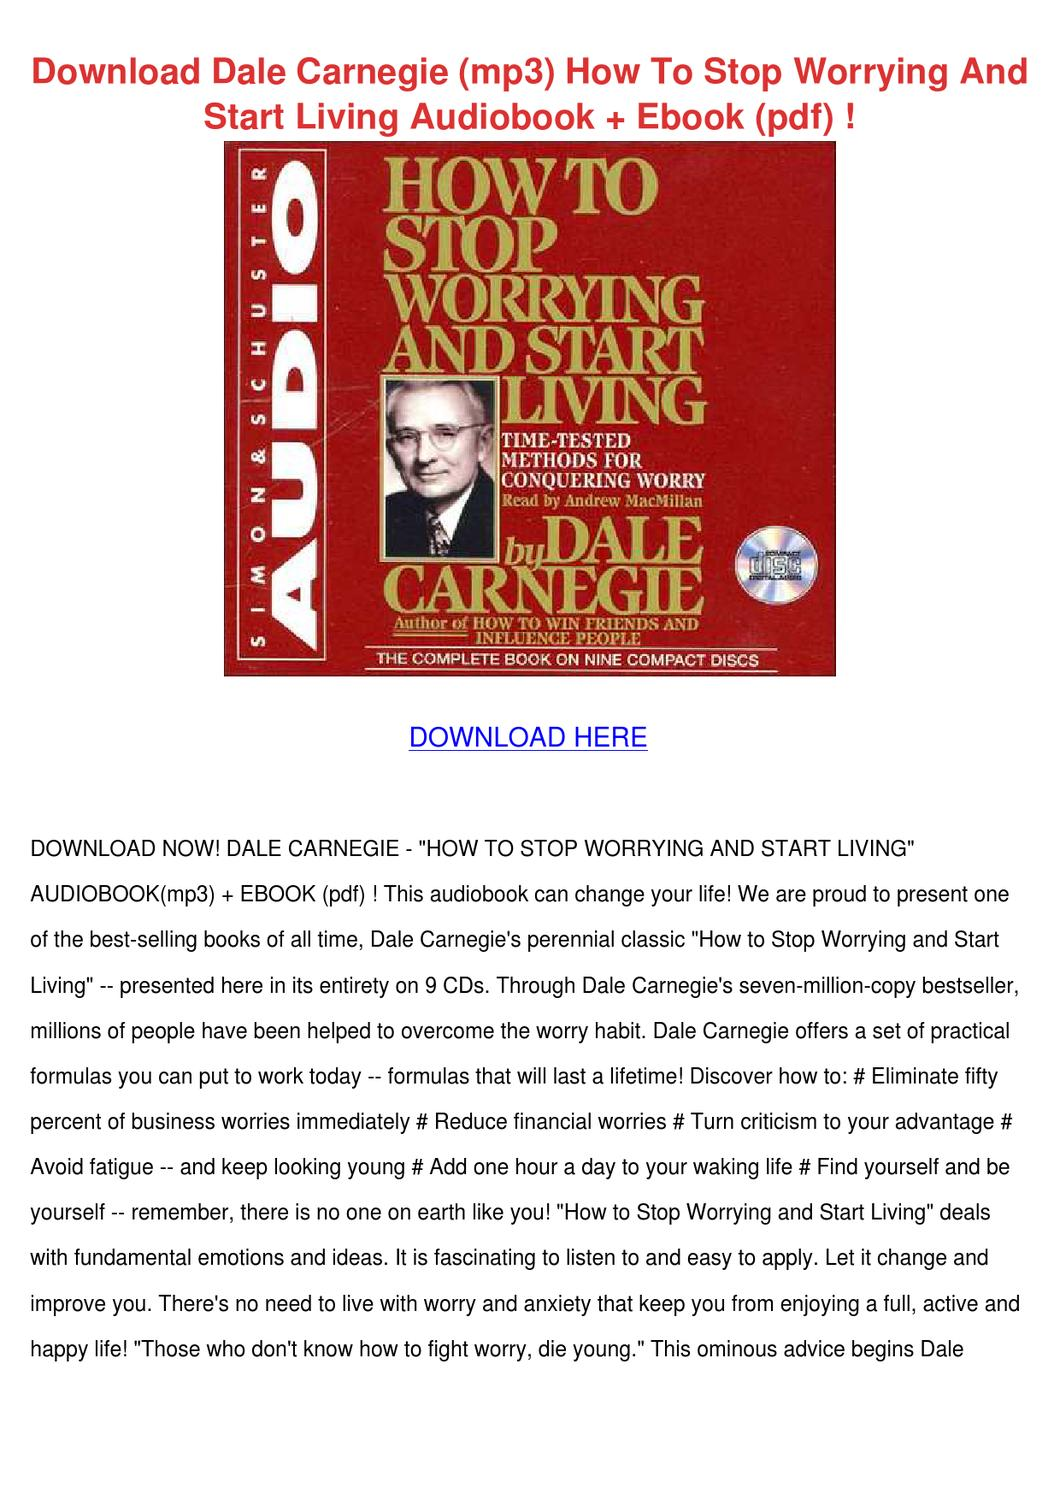 Download Dale Carnegie Mp3 How To Stop Worryi by Karre Giovanelli